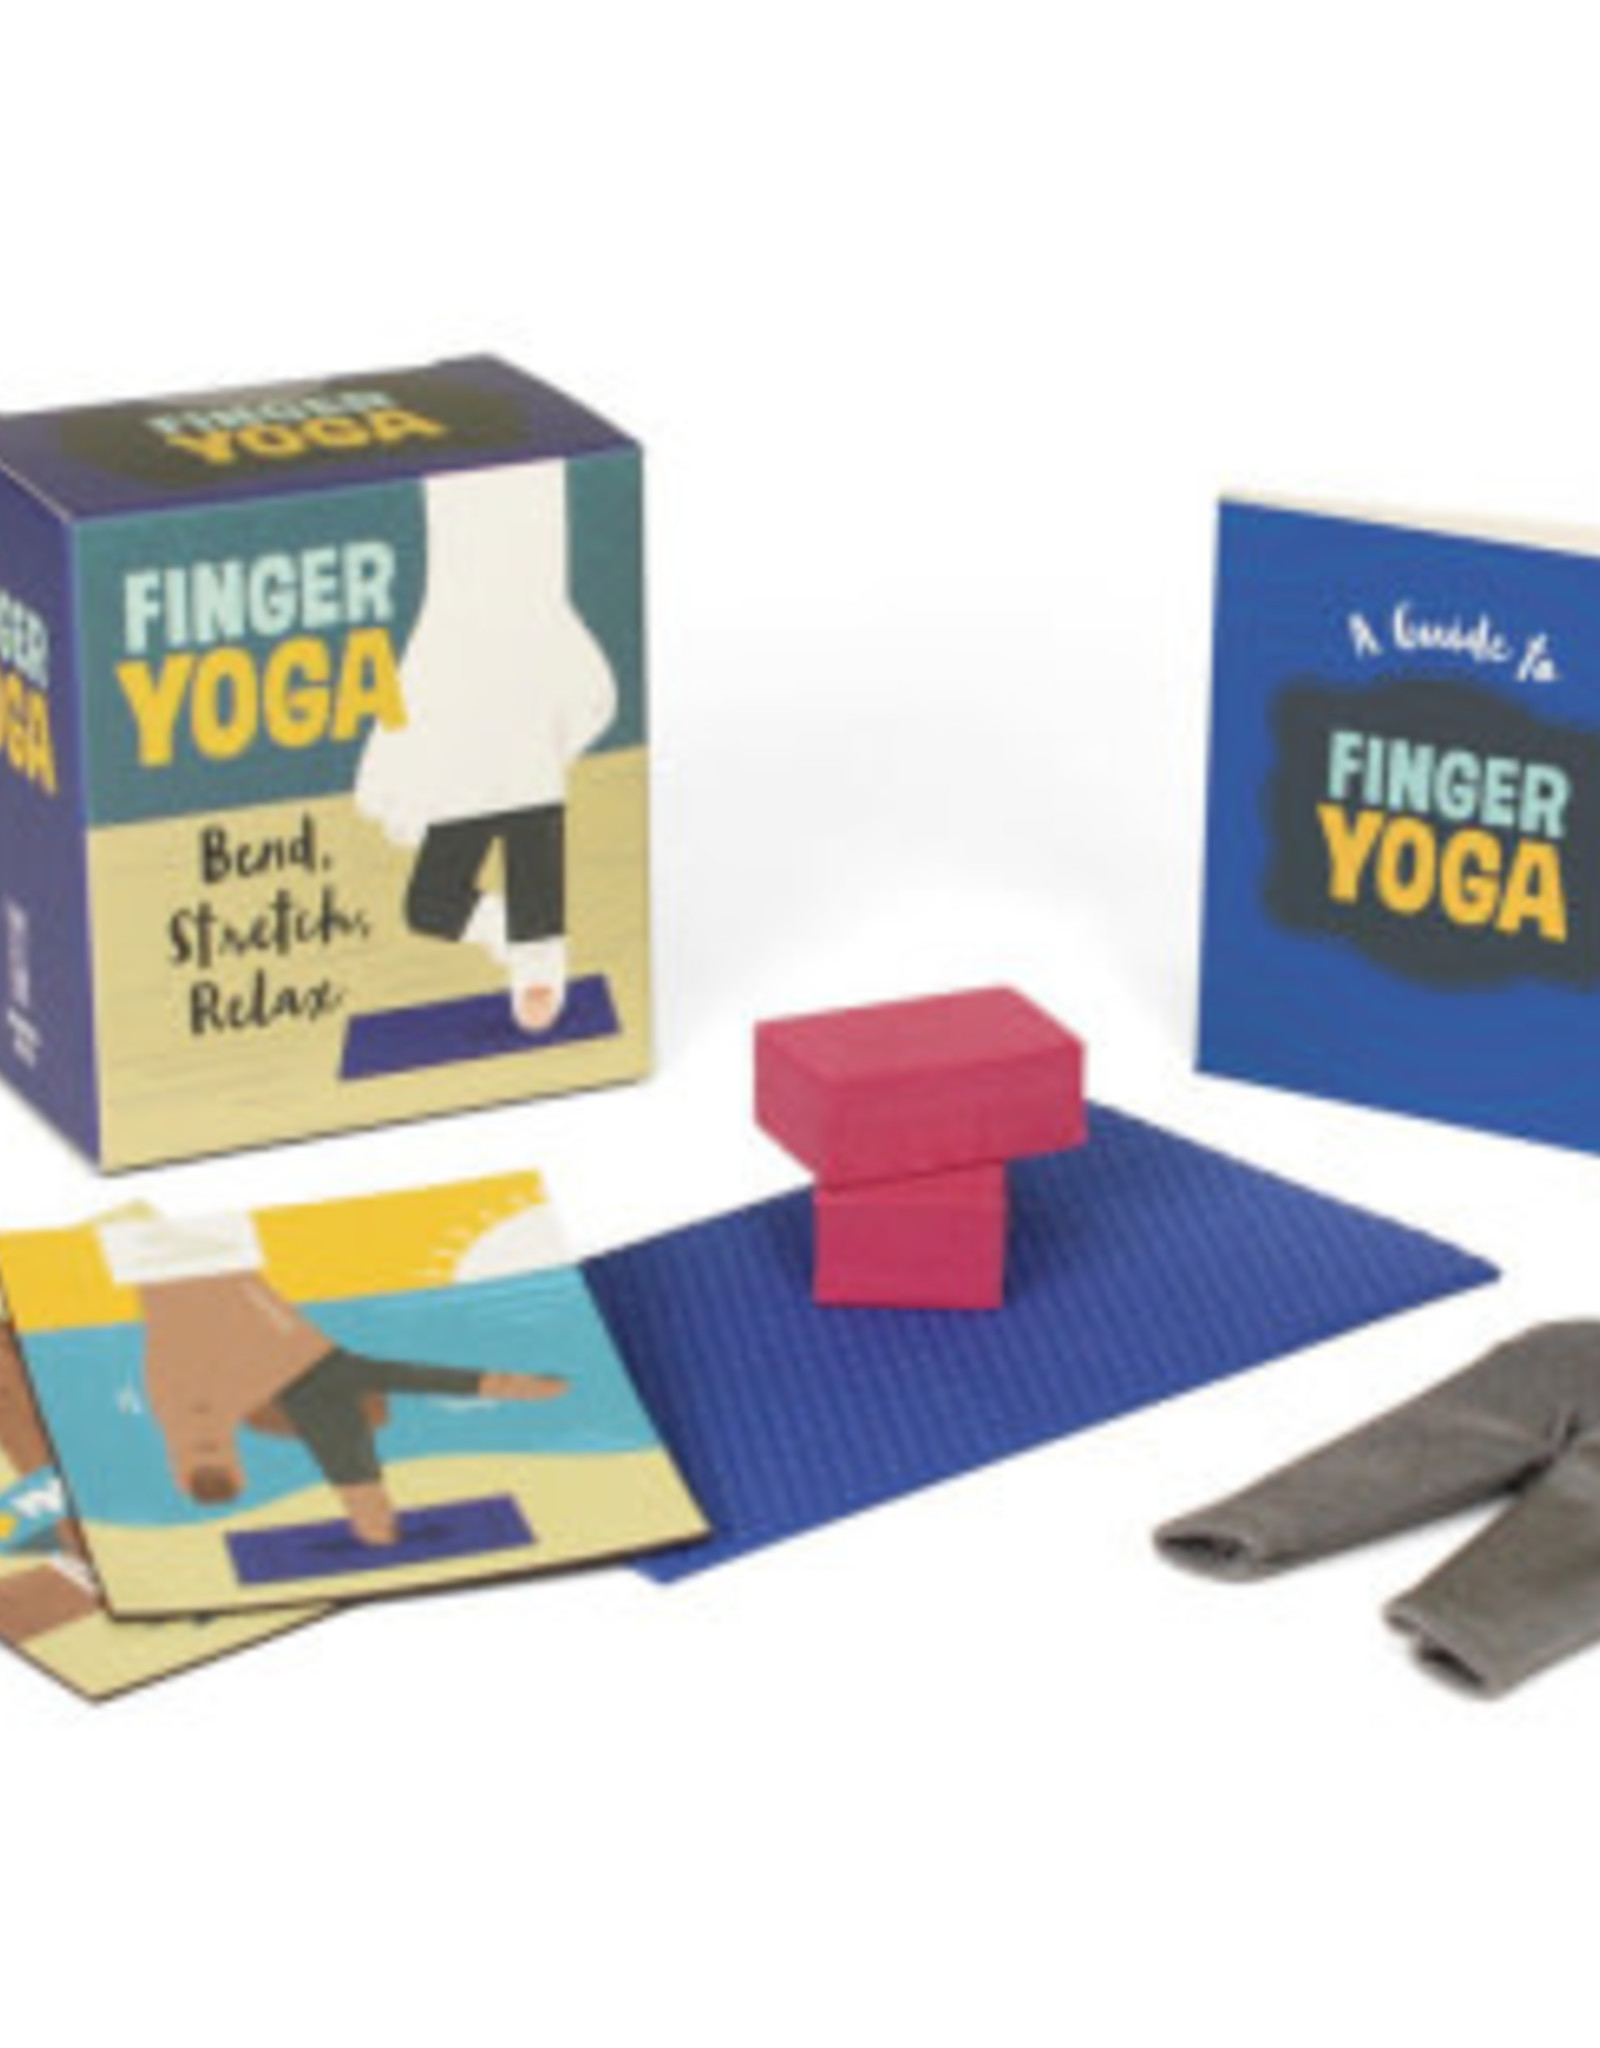 Hachette Mini Kit Finger Yoga